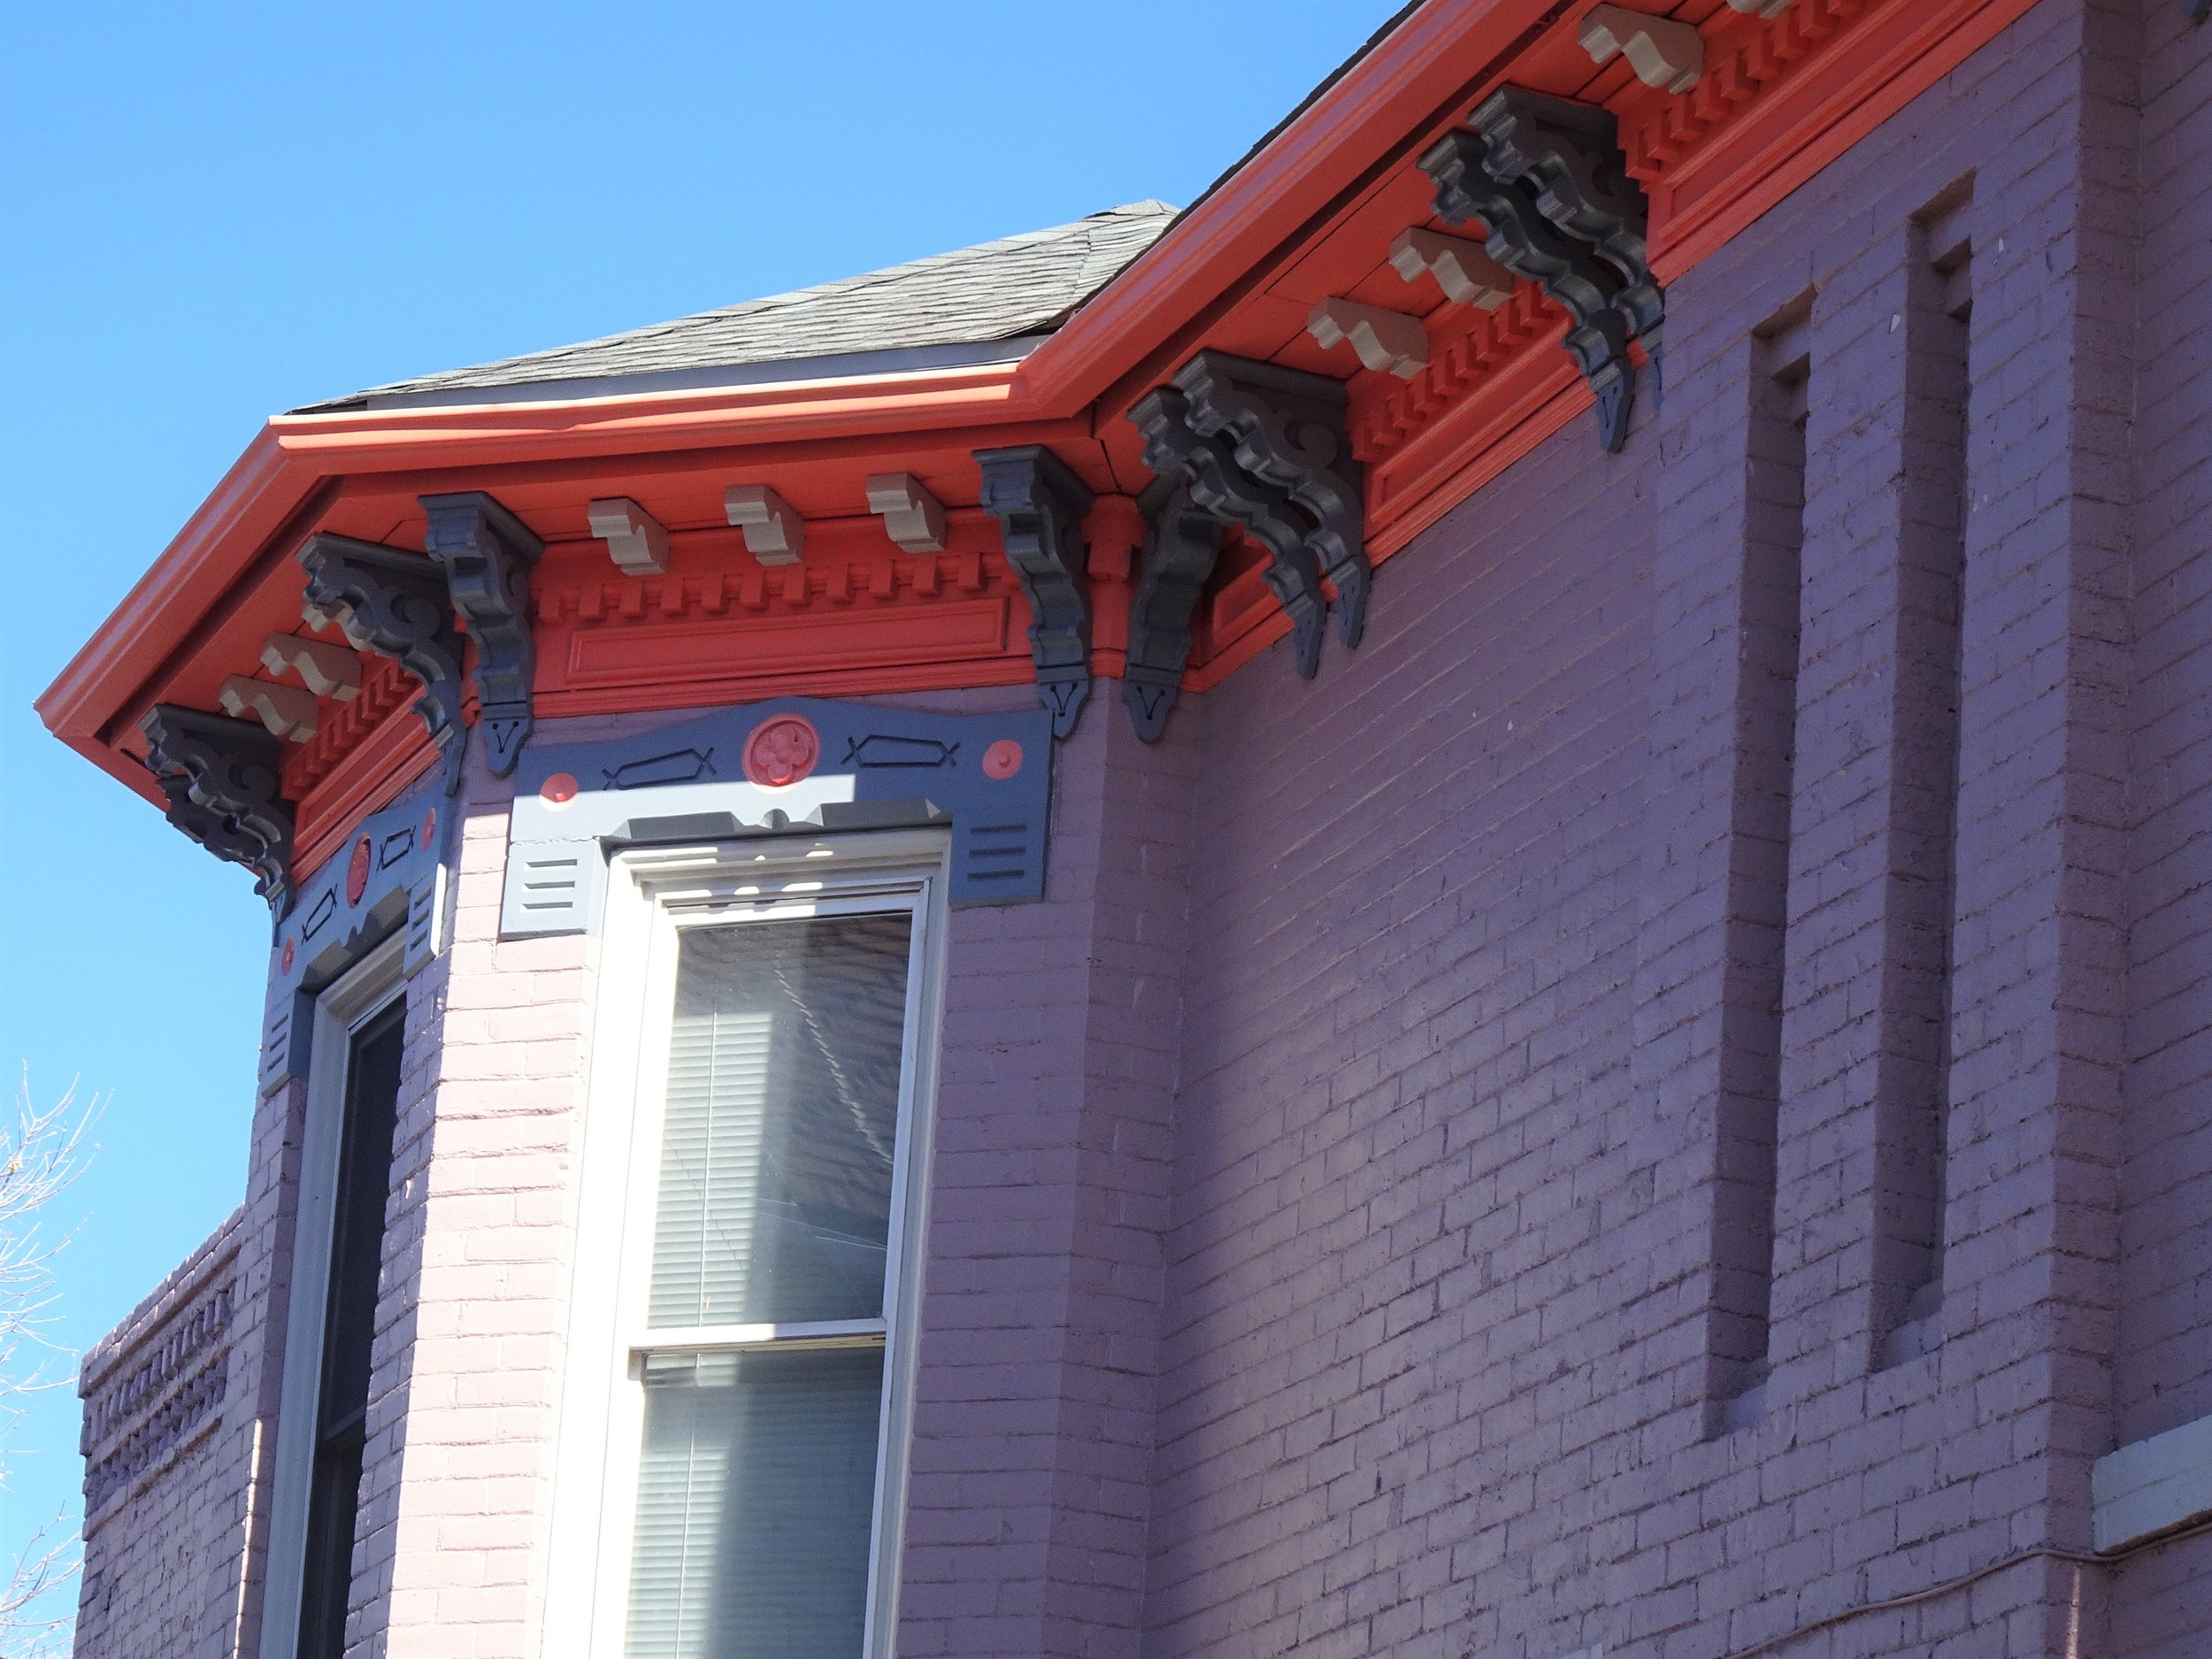 Wooden cornices are often the most ornate decoration found on an Italianate style home.